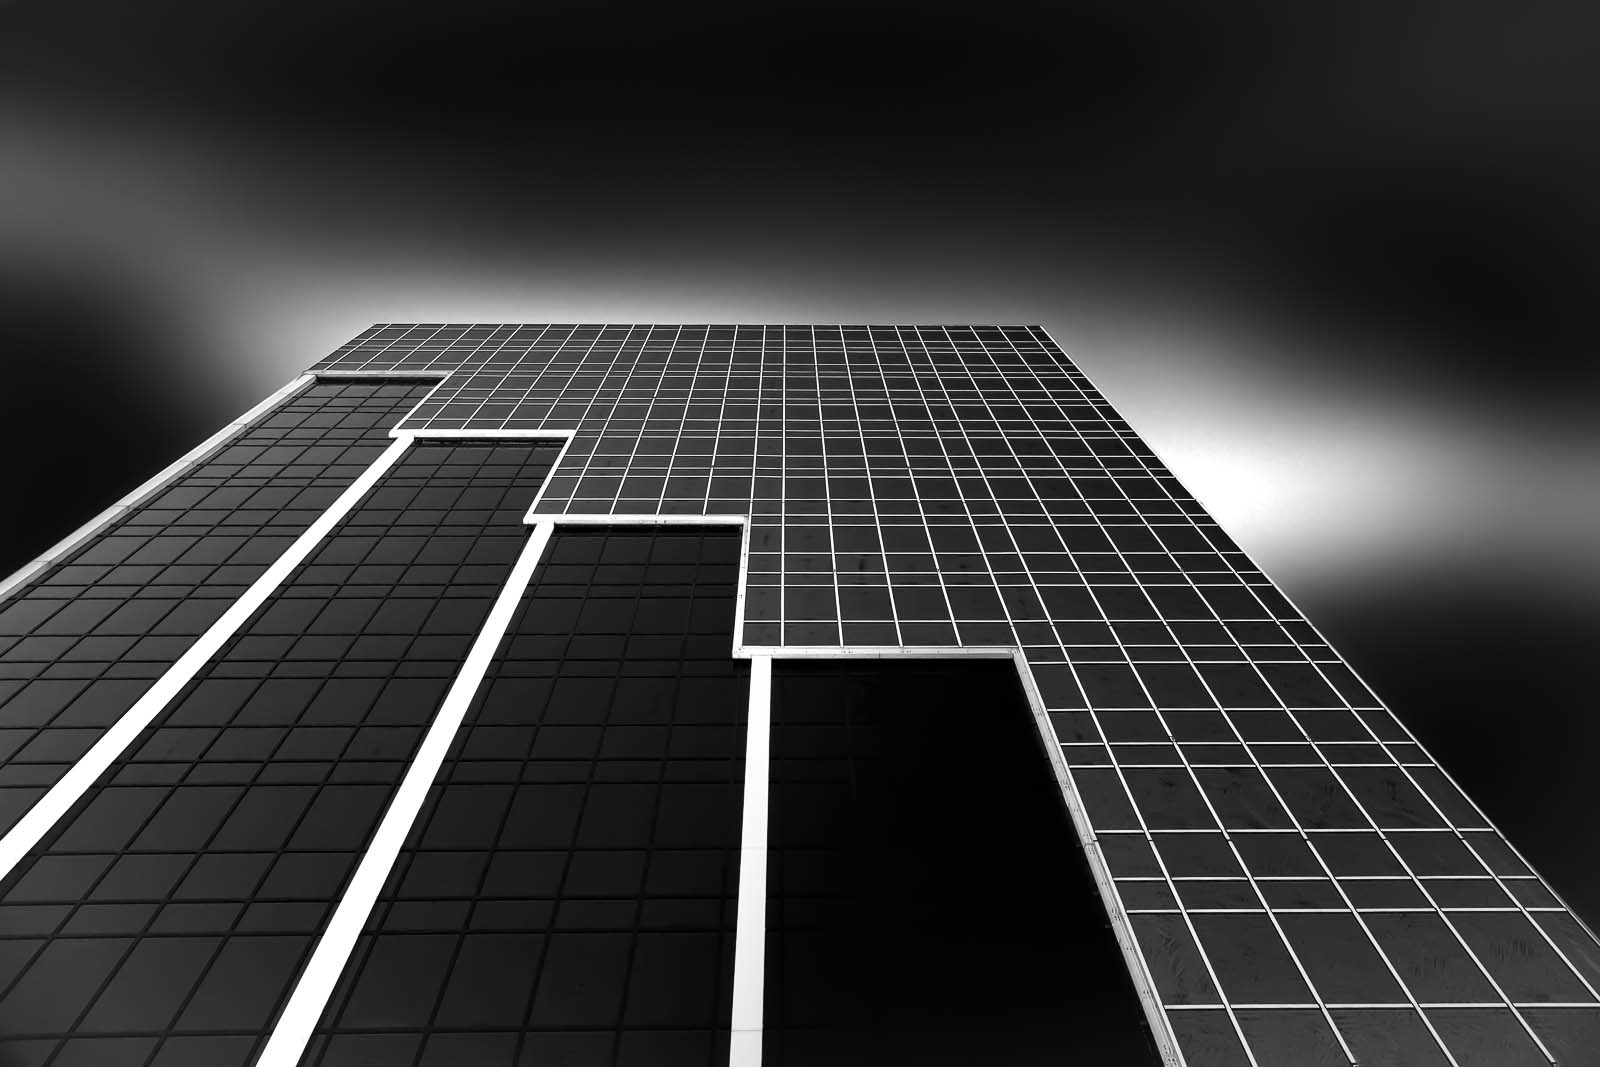 antonyz long exposure architecture modern glass office building miami black and white